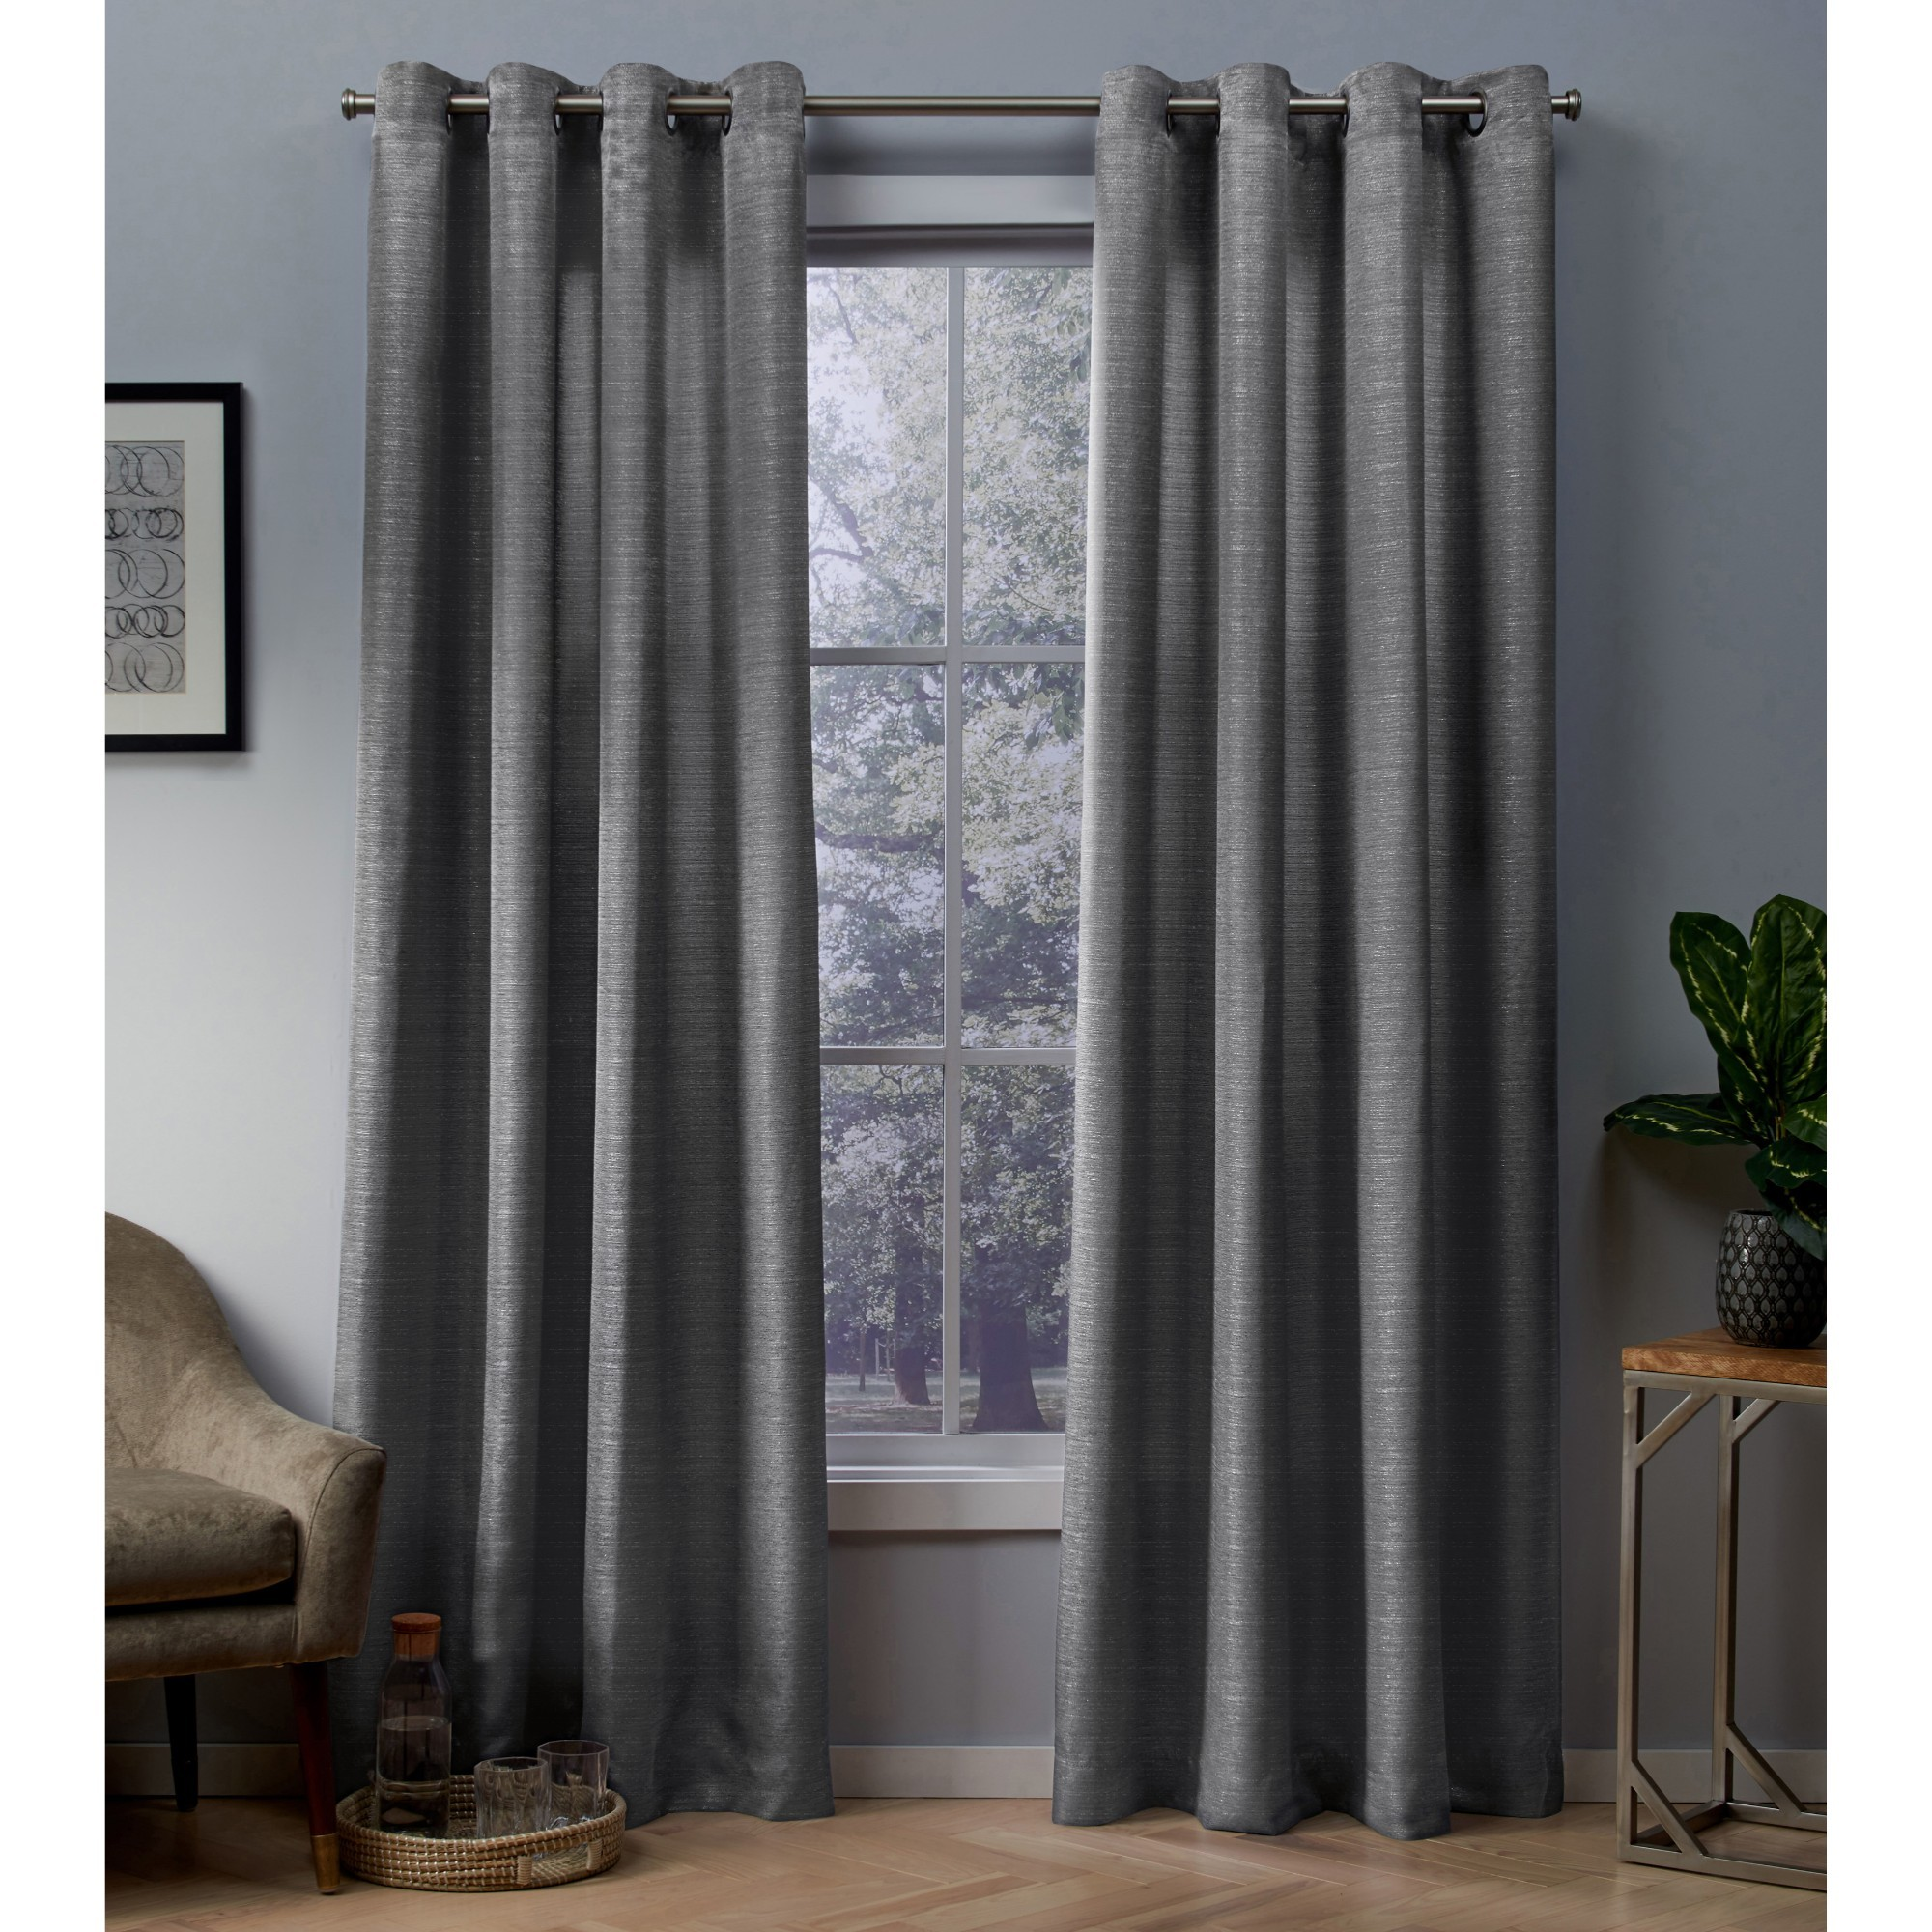 Exclusive Home Curtains 2 Pack Whitby Metallic Slub Yarn Textured Silk Look Grommet Top Curtain Panels